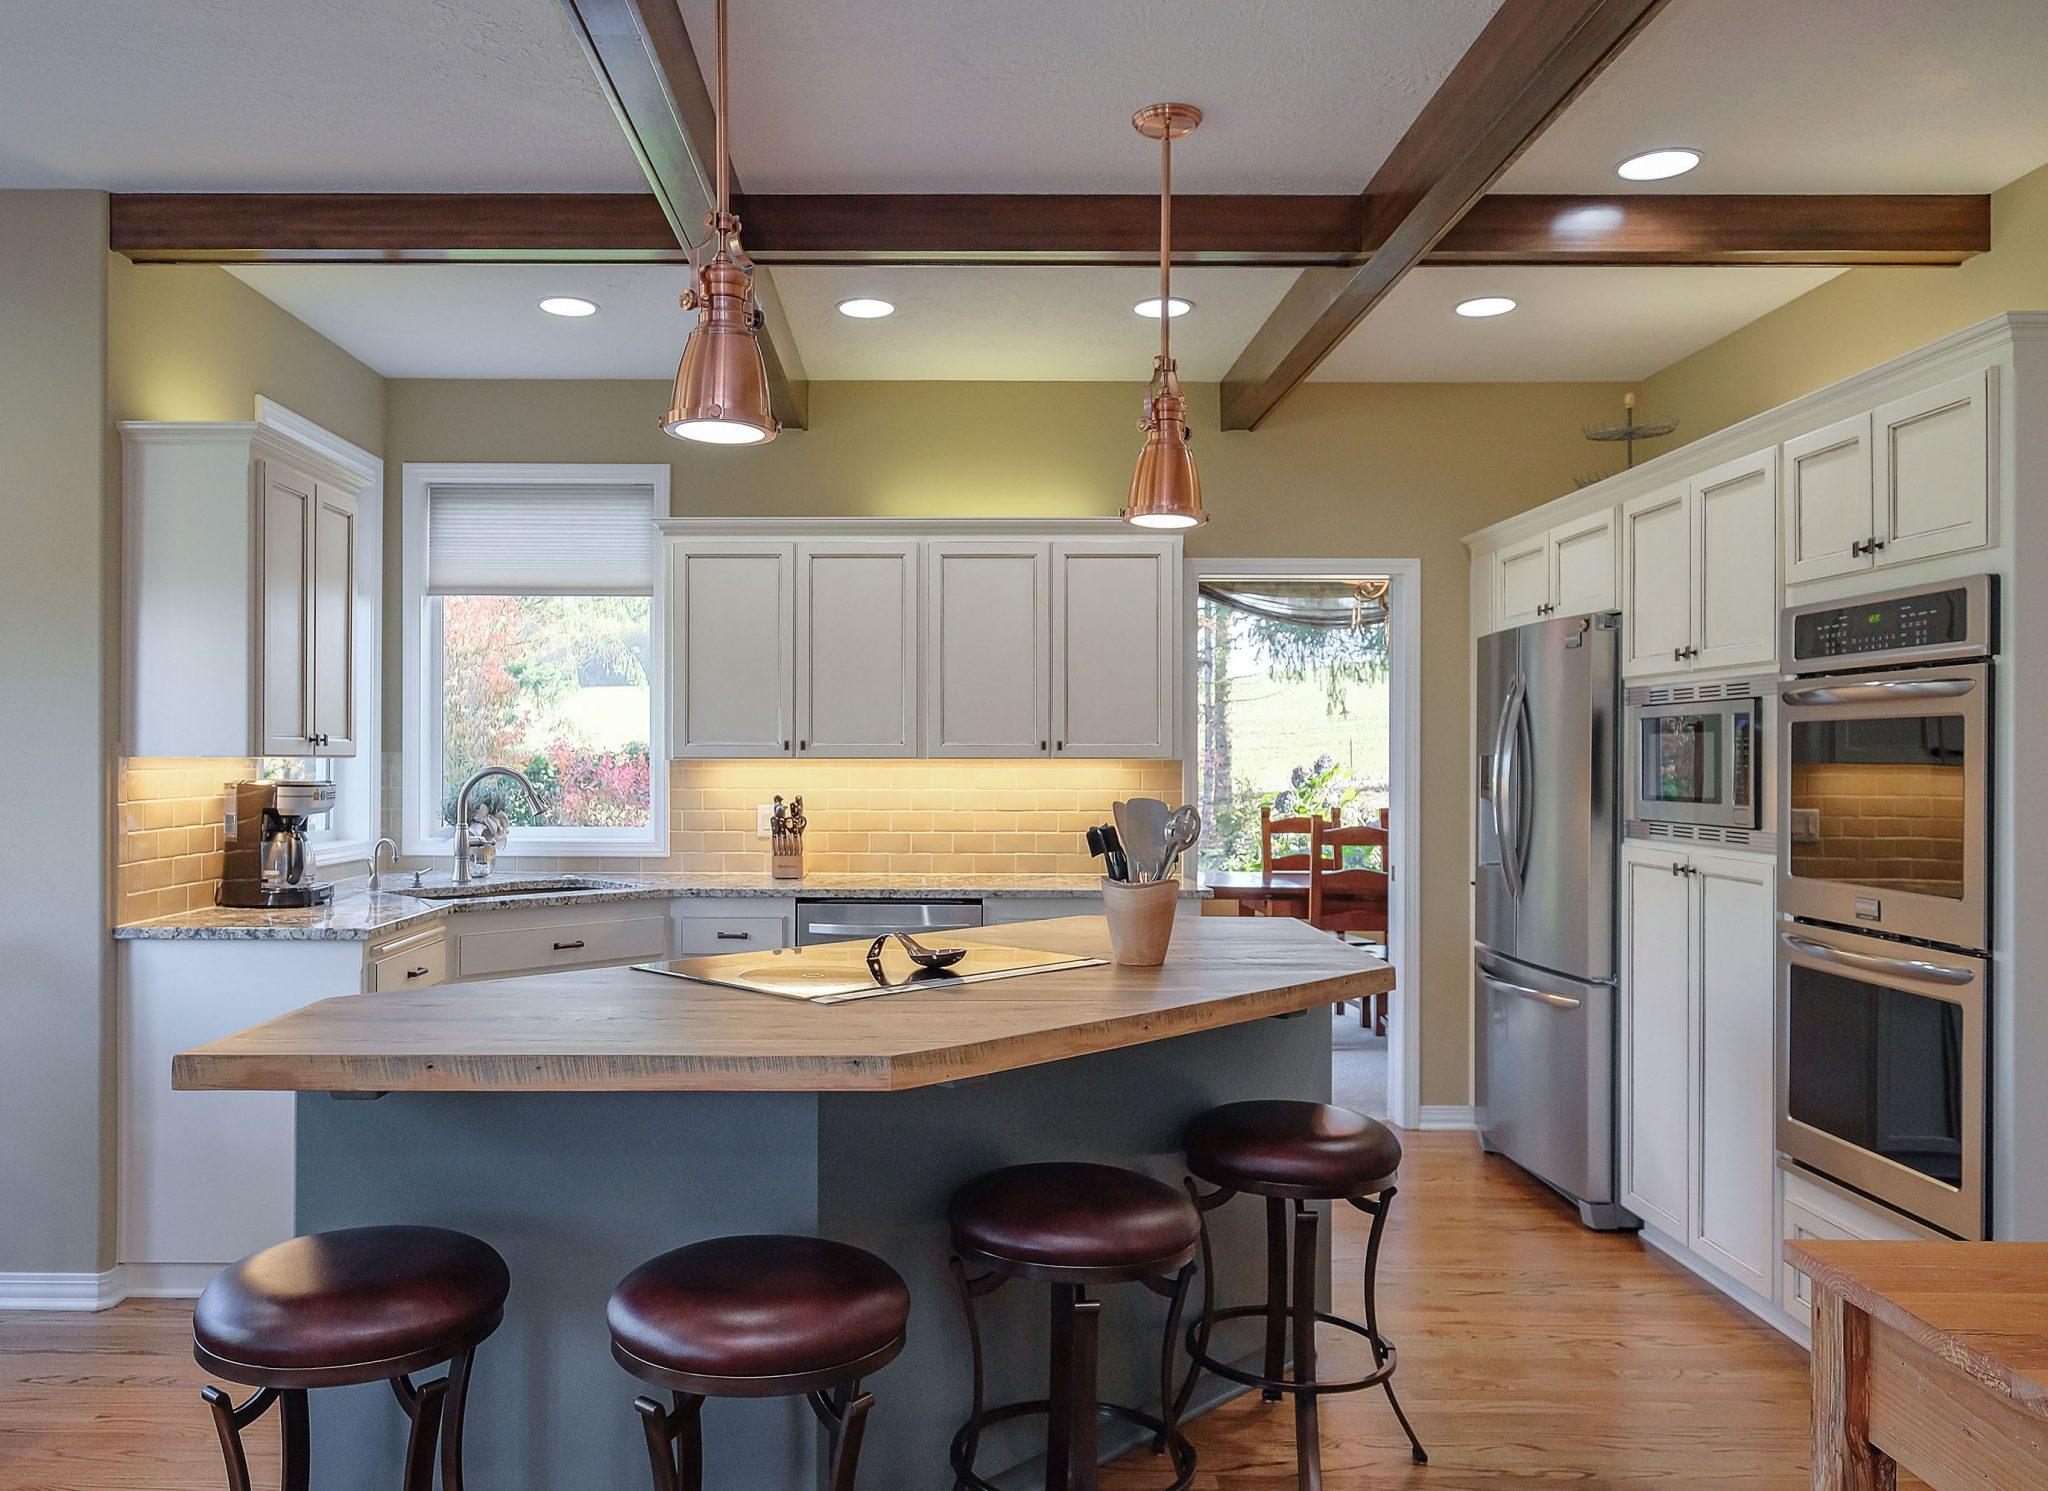 Complete kitchen remodel and redesign.